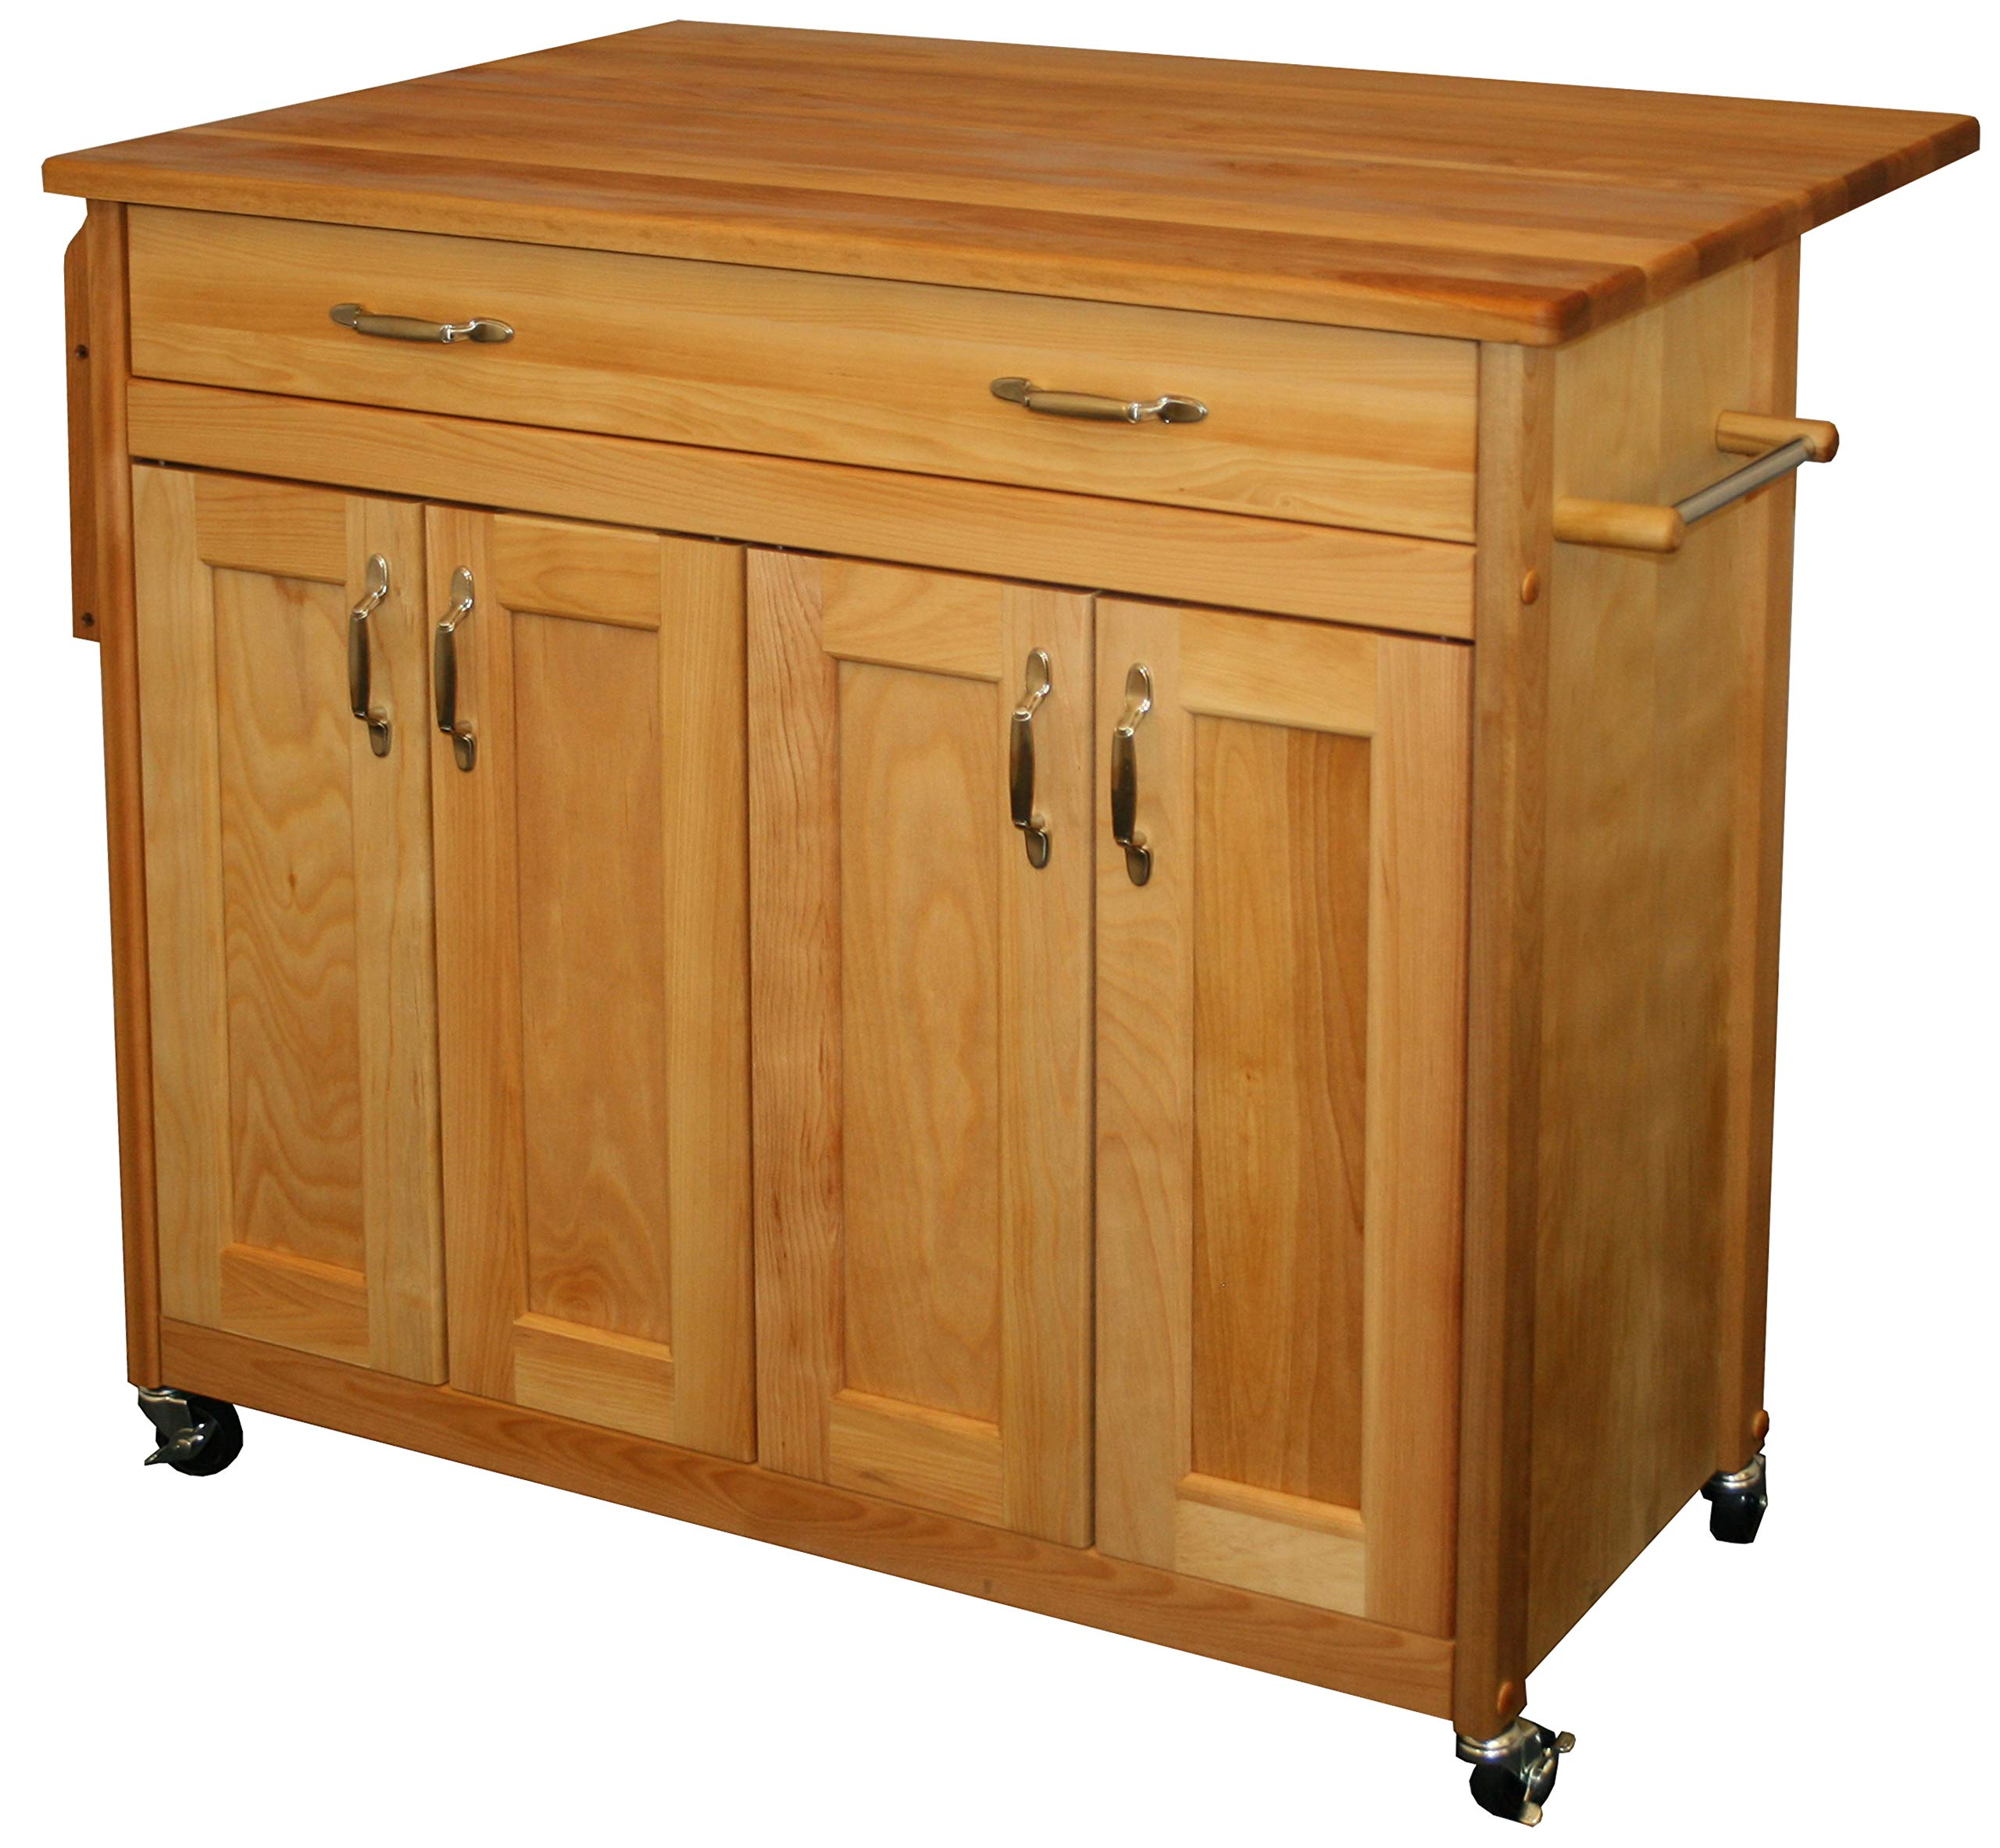 Catskill Craftsmen Mid-Sized Island with Flat Panel Doors and Drop Leaf by Catskill Craftsmen